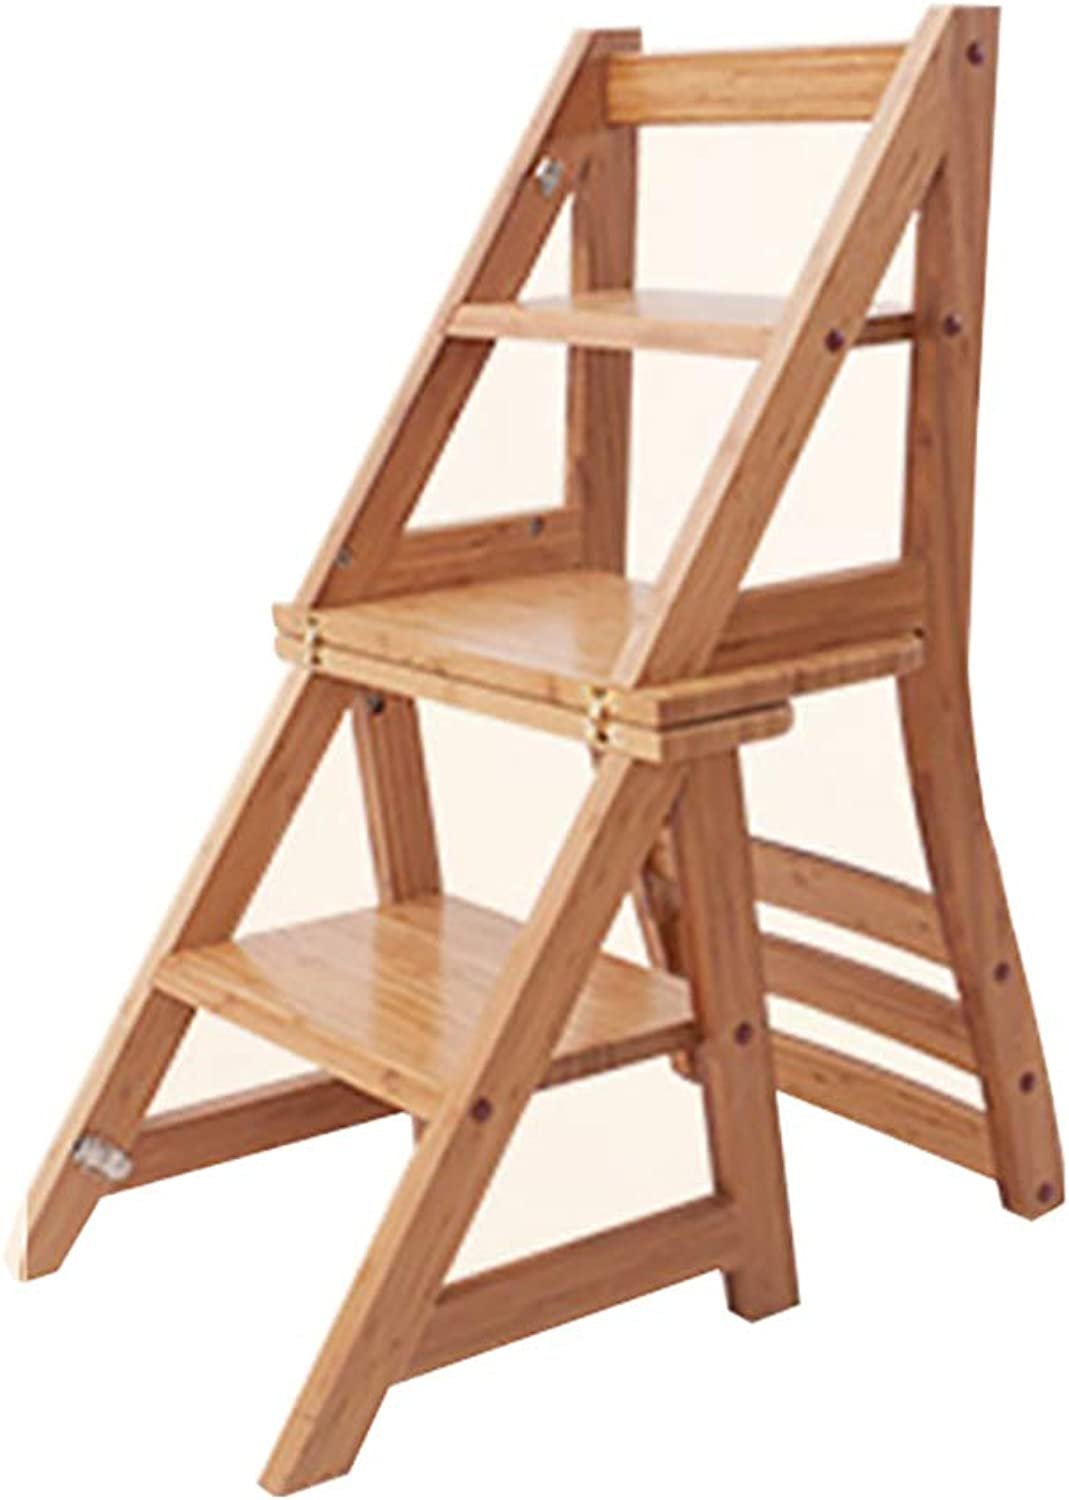 Step stool Three-step Anti-slip Stair Stool, Home Multi-function Dual-use Ladder Chair, Solid Wood Folding Stool, Bamboo Adult Step Stool,90×62×38cm